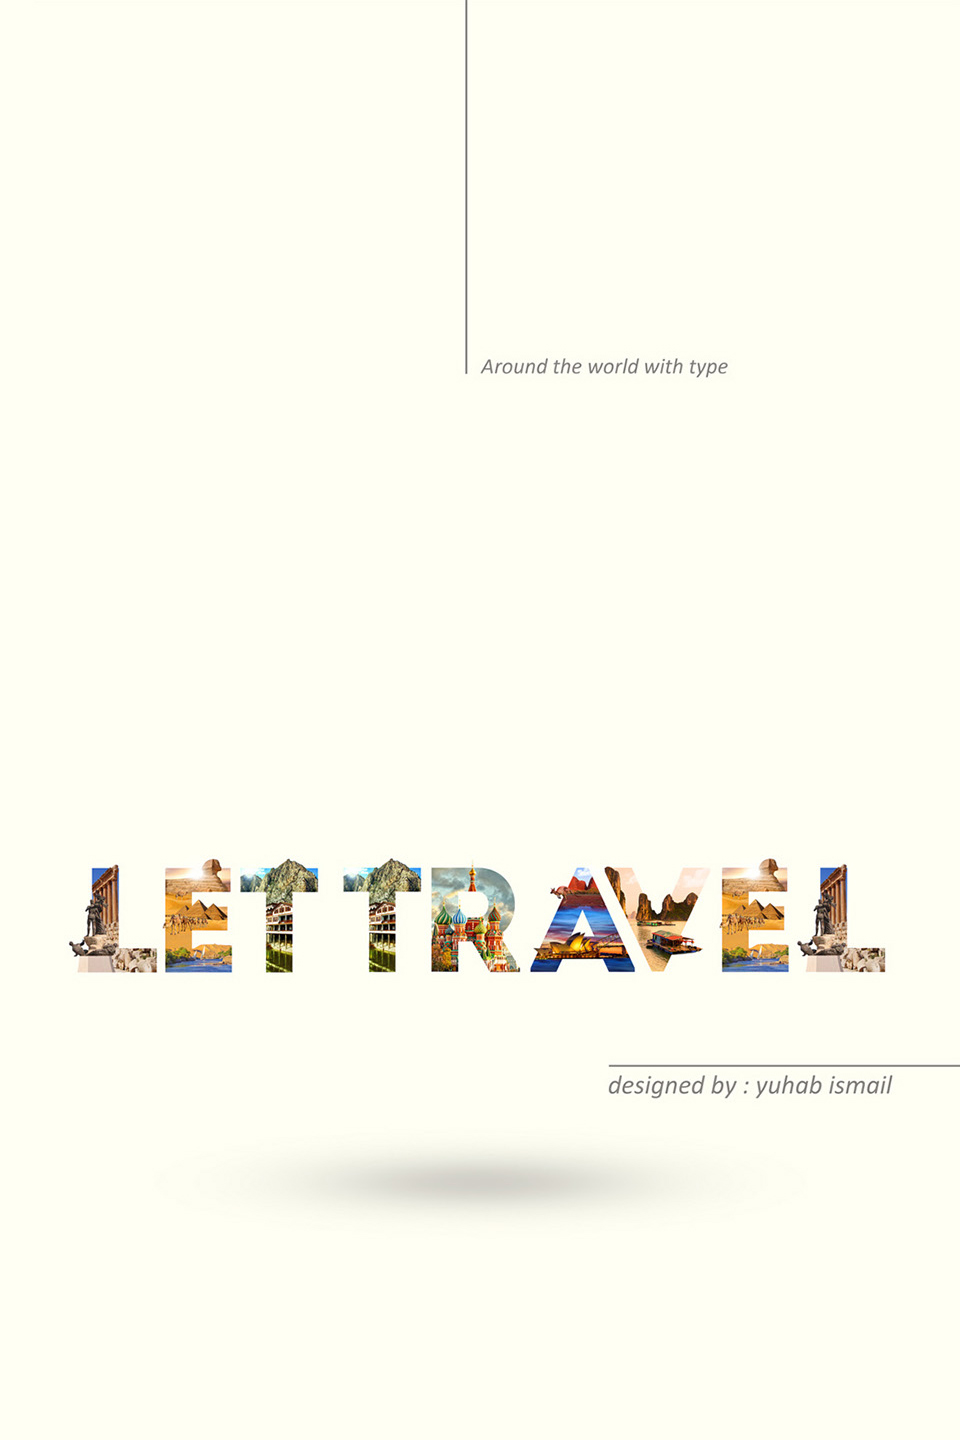 Beautiful Alphabet Series Of Countries And Their Iconic Landmarks -